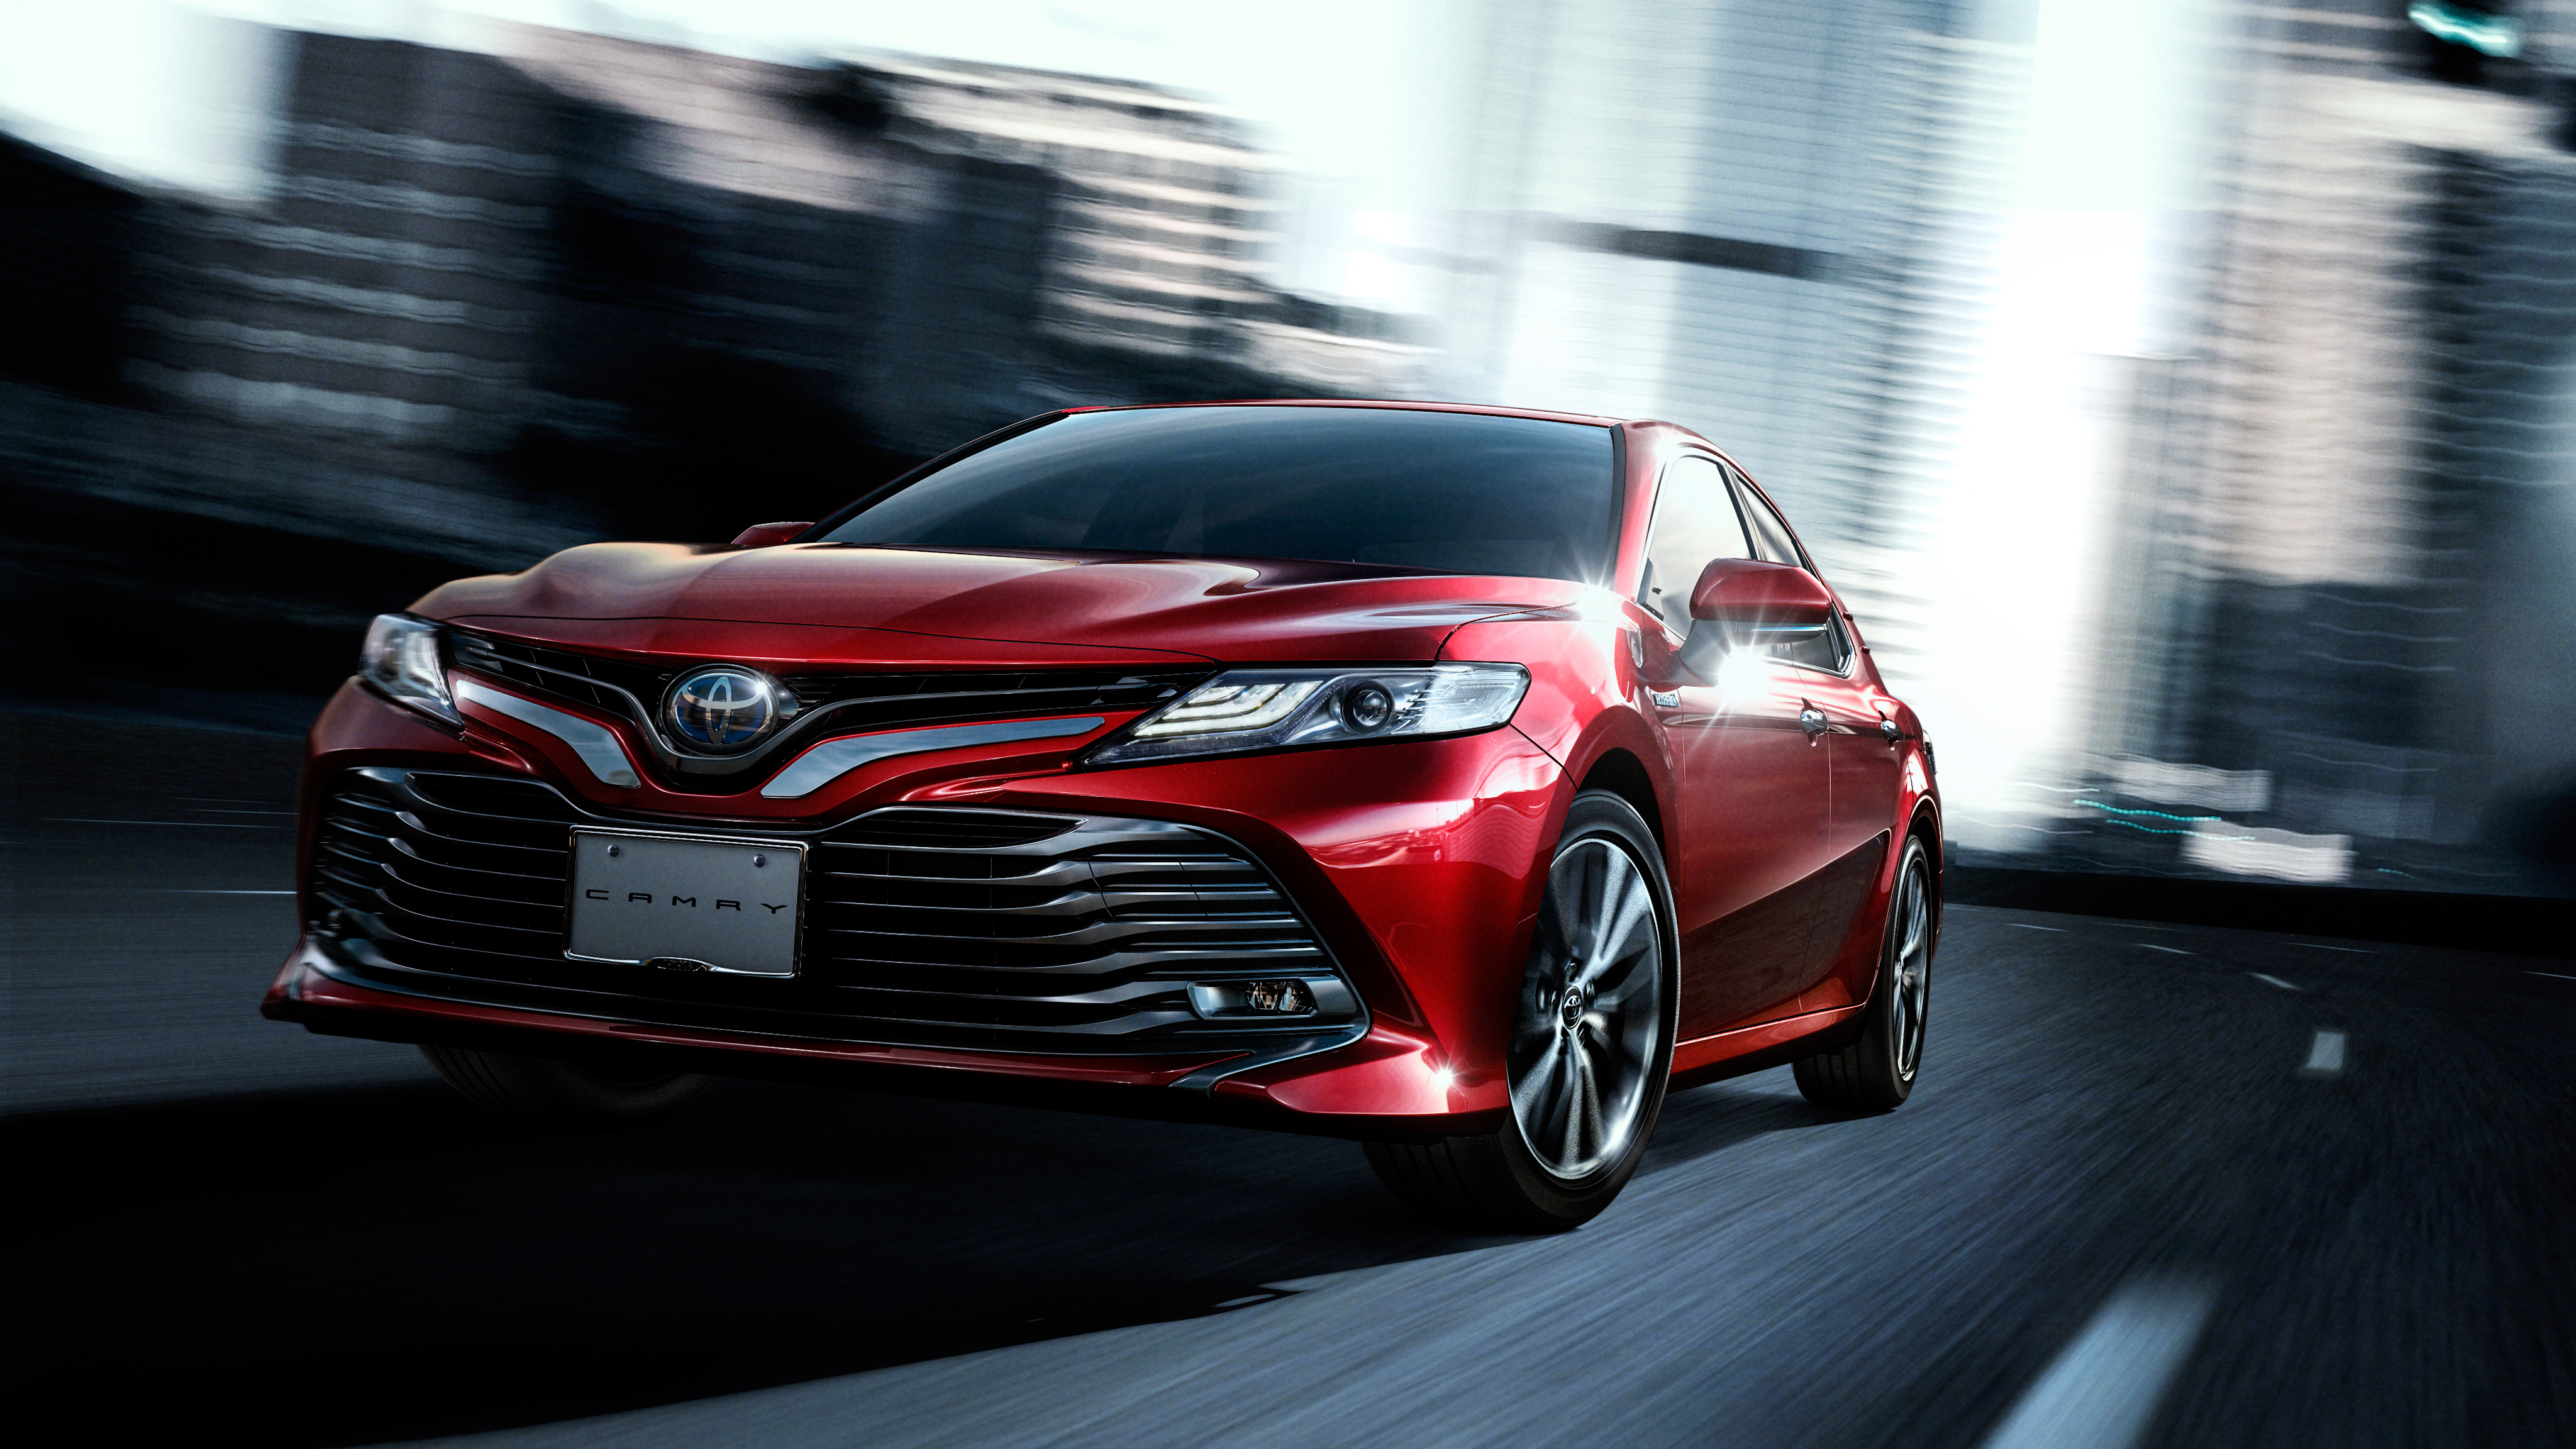 Toyota Camry Wallpapers and Background Images   stmednet 4096x2304